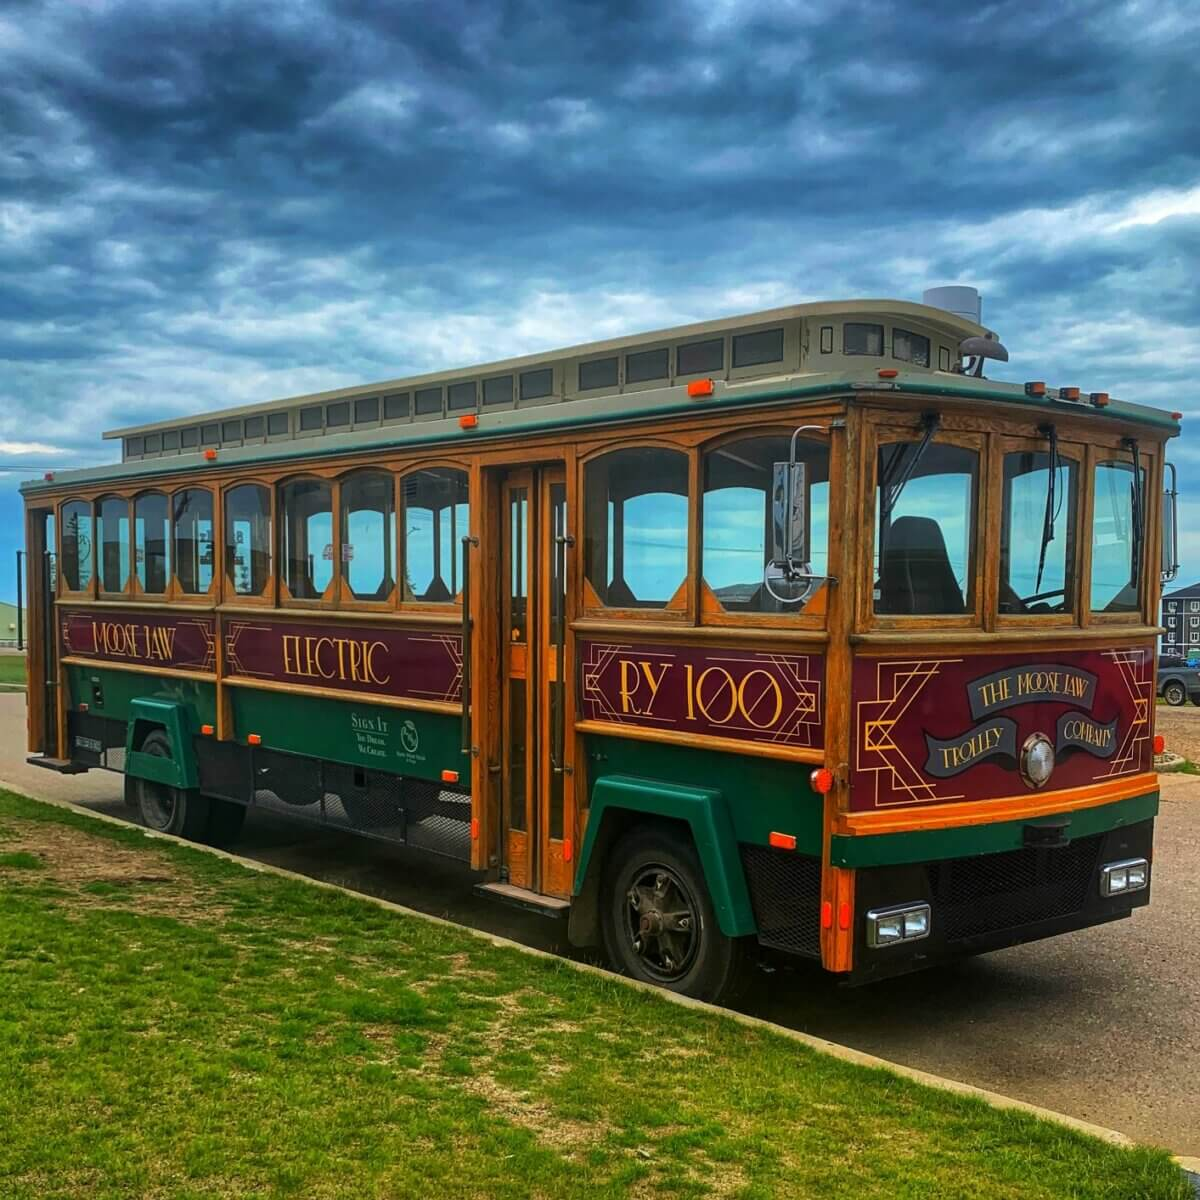 Moose Jaw trolley bus, ready for fun times this summer